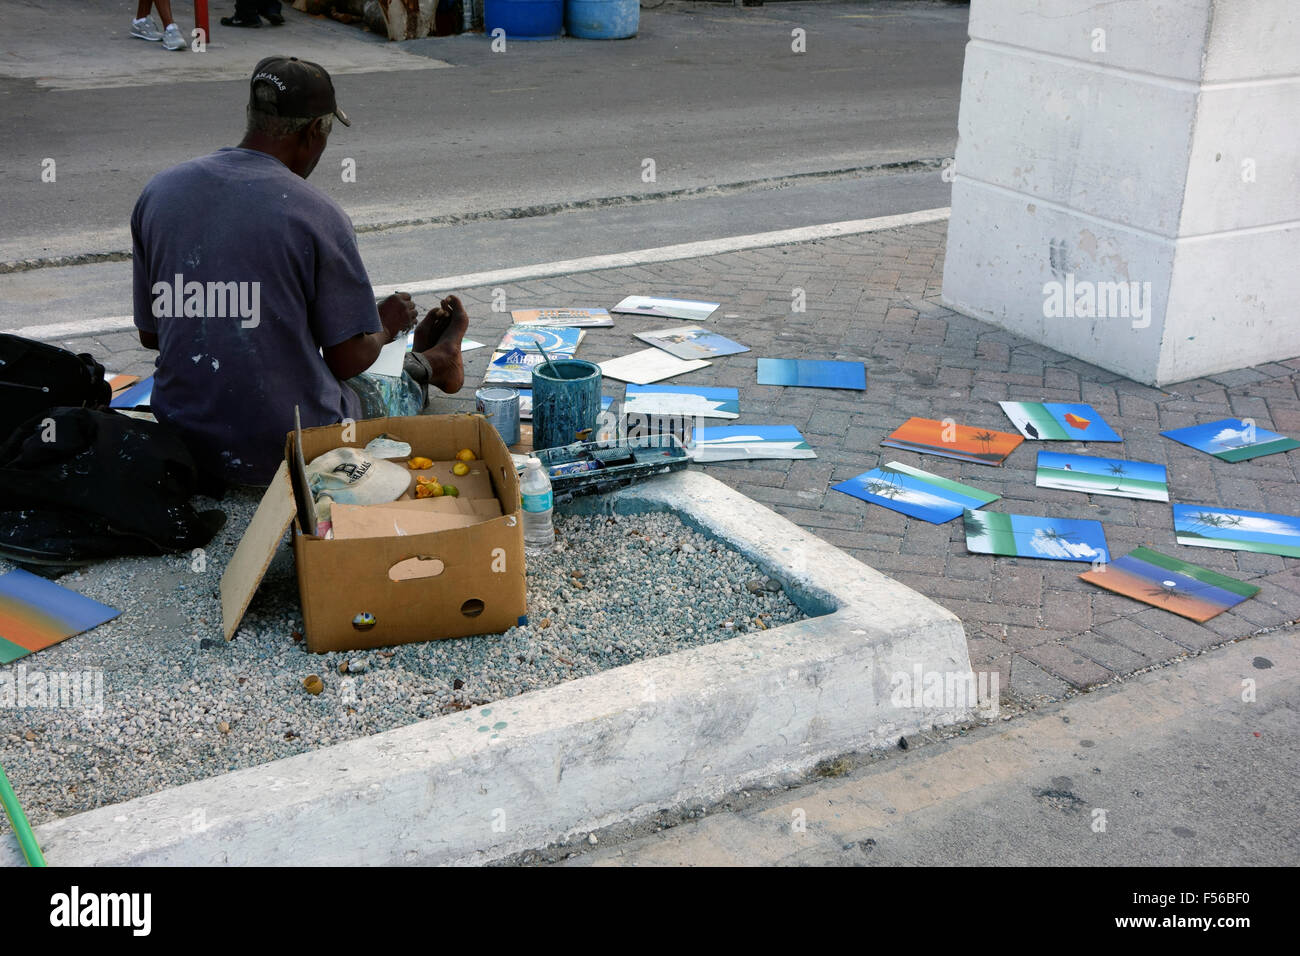 street artist selling his paintings on the street near